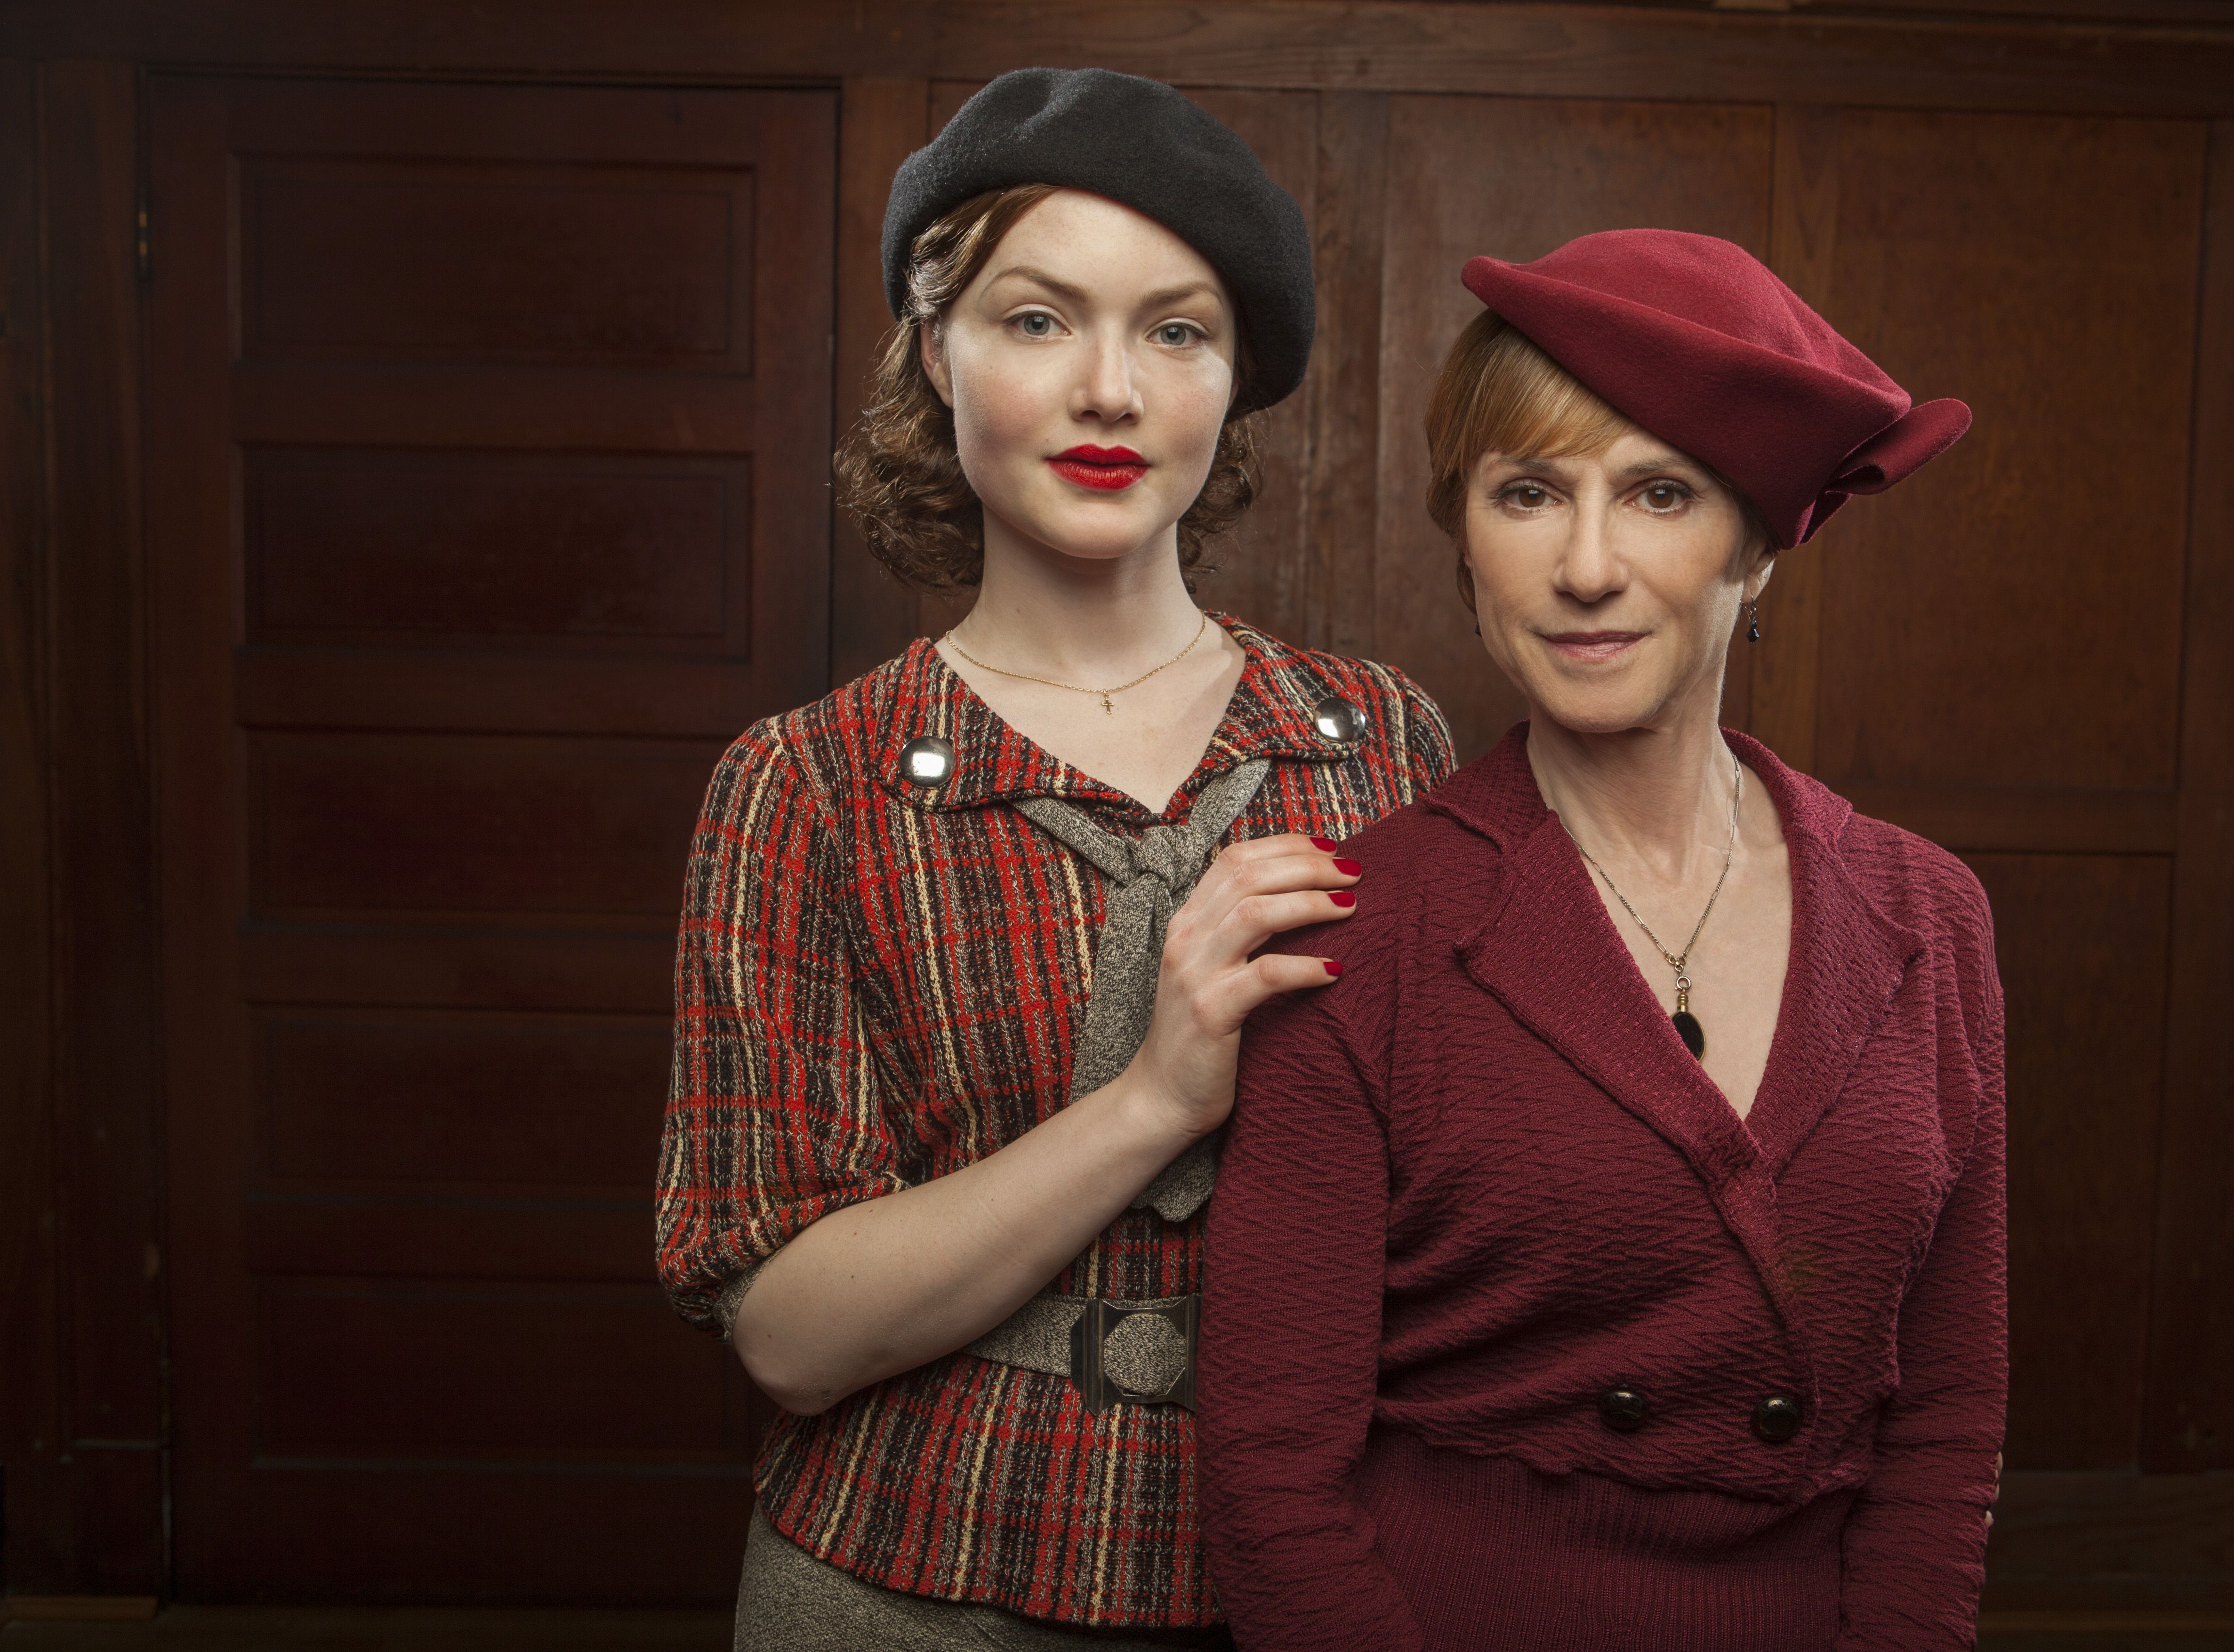 Bonnie (Holliday Grainger) and her mother, Emma (Holly Hunter)